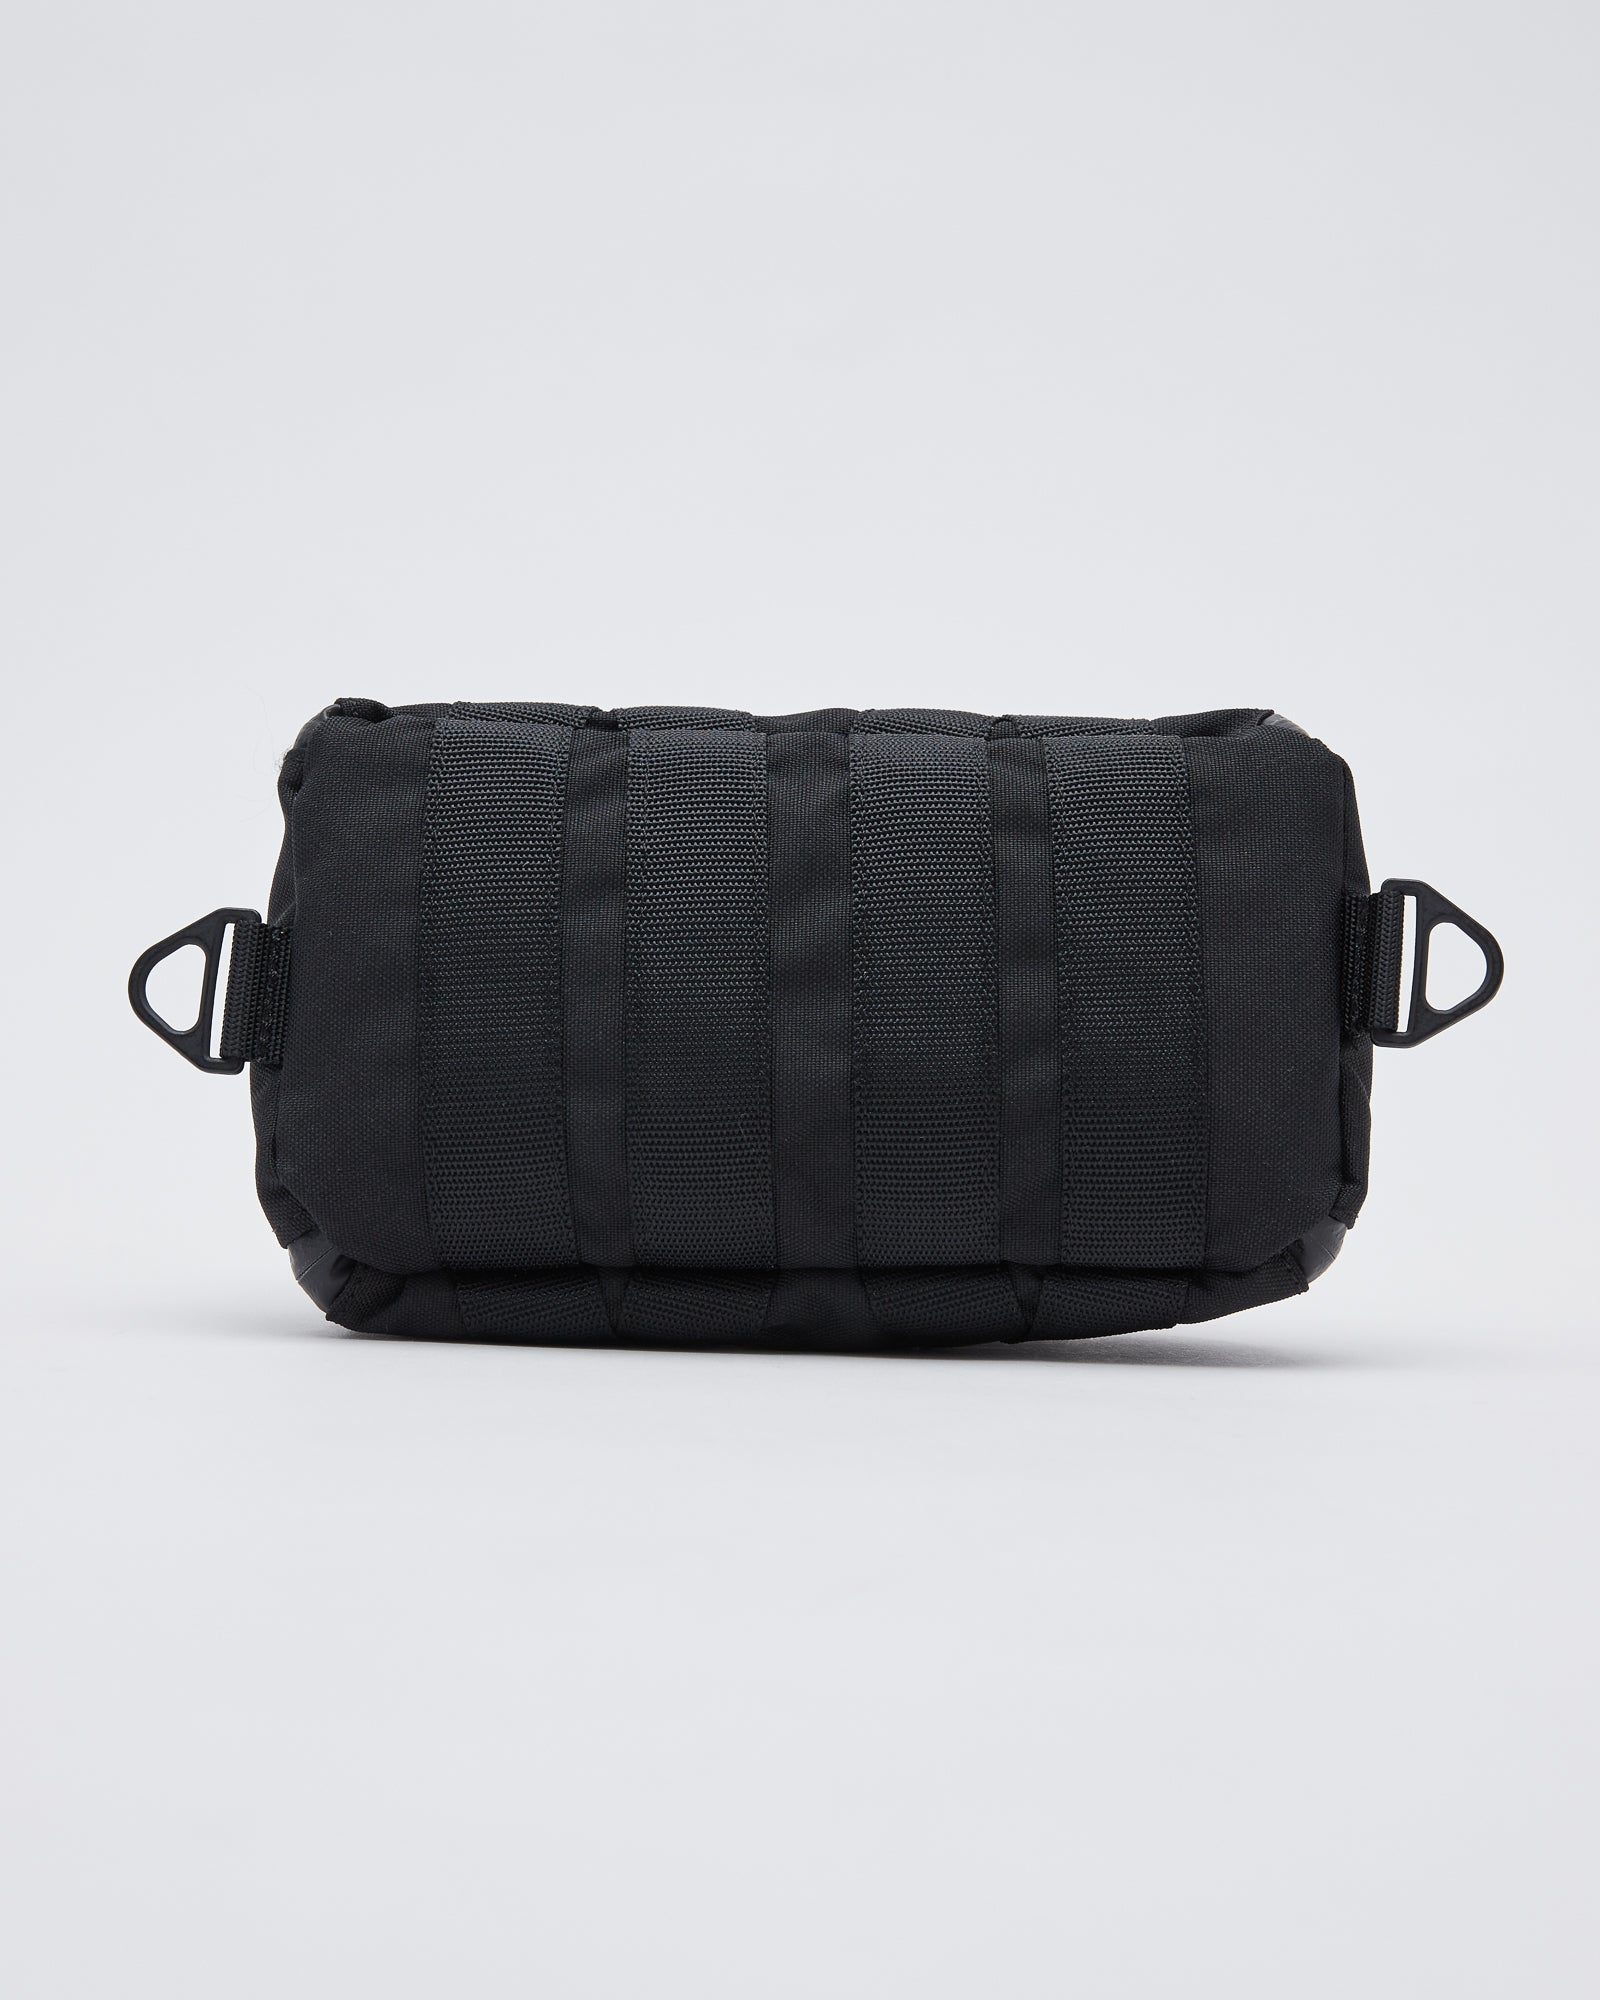 GDFHT x Take Hanafusa Micro Track Day Bag in Black